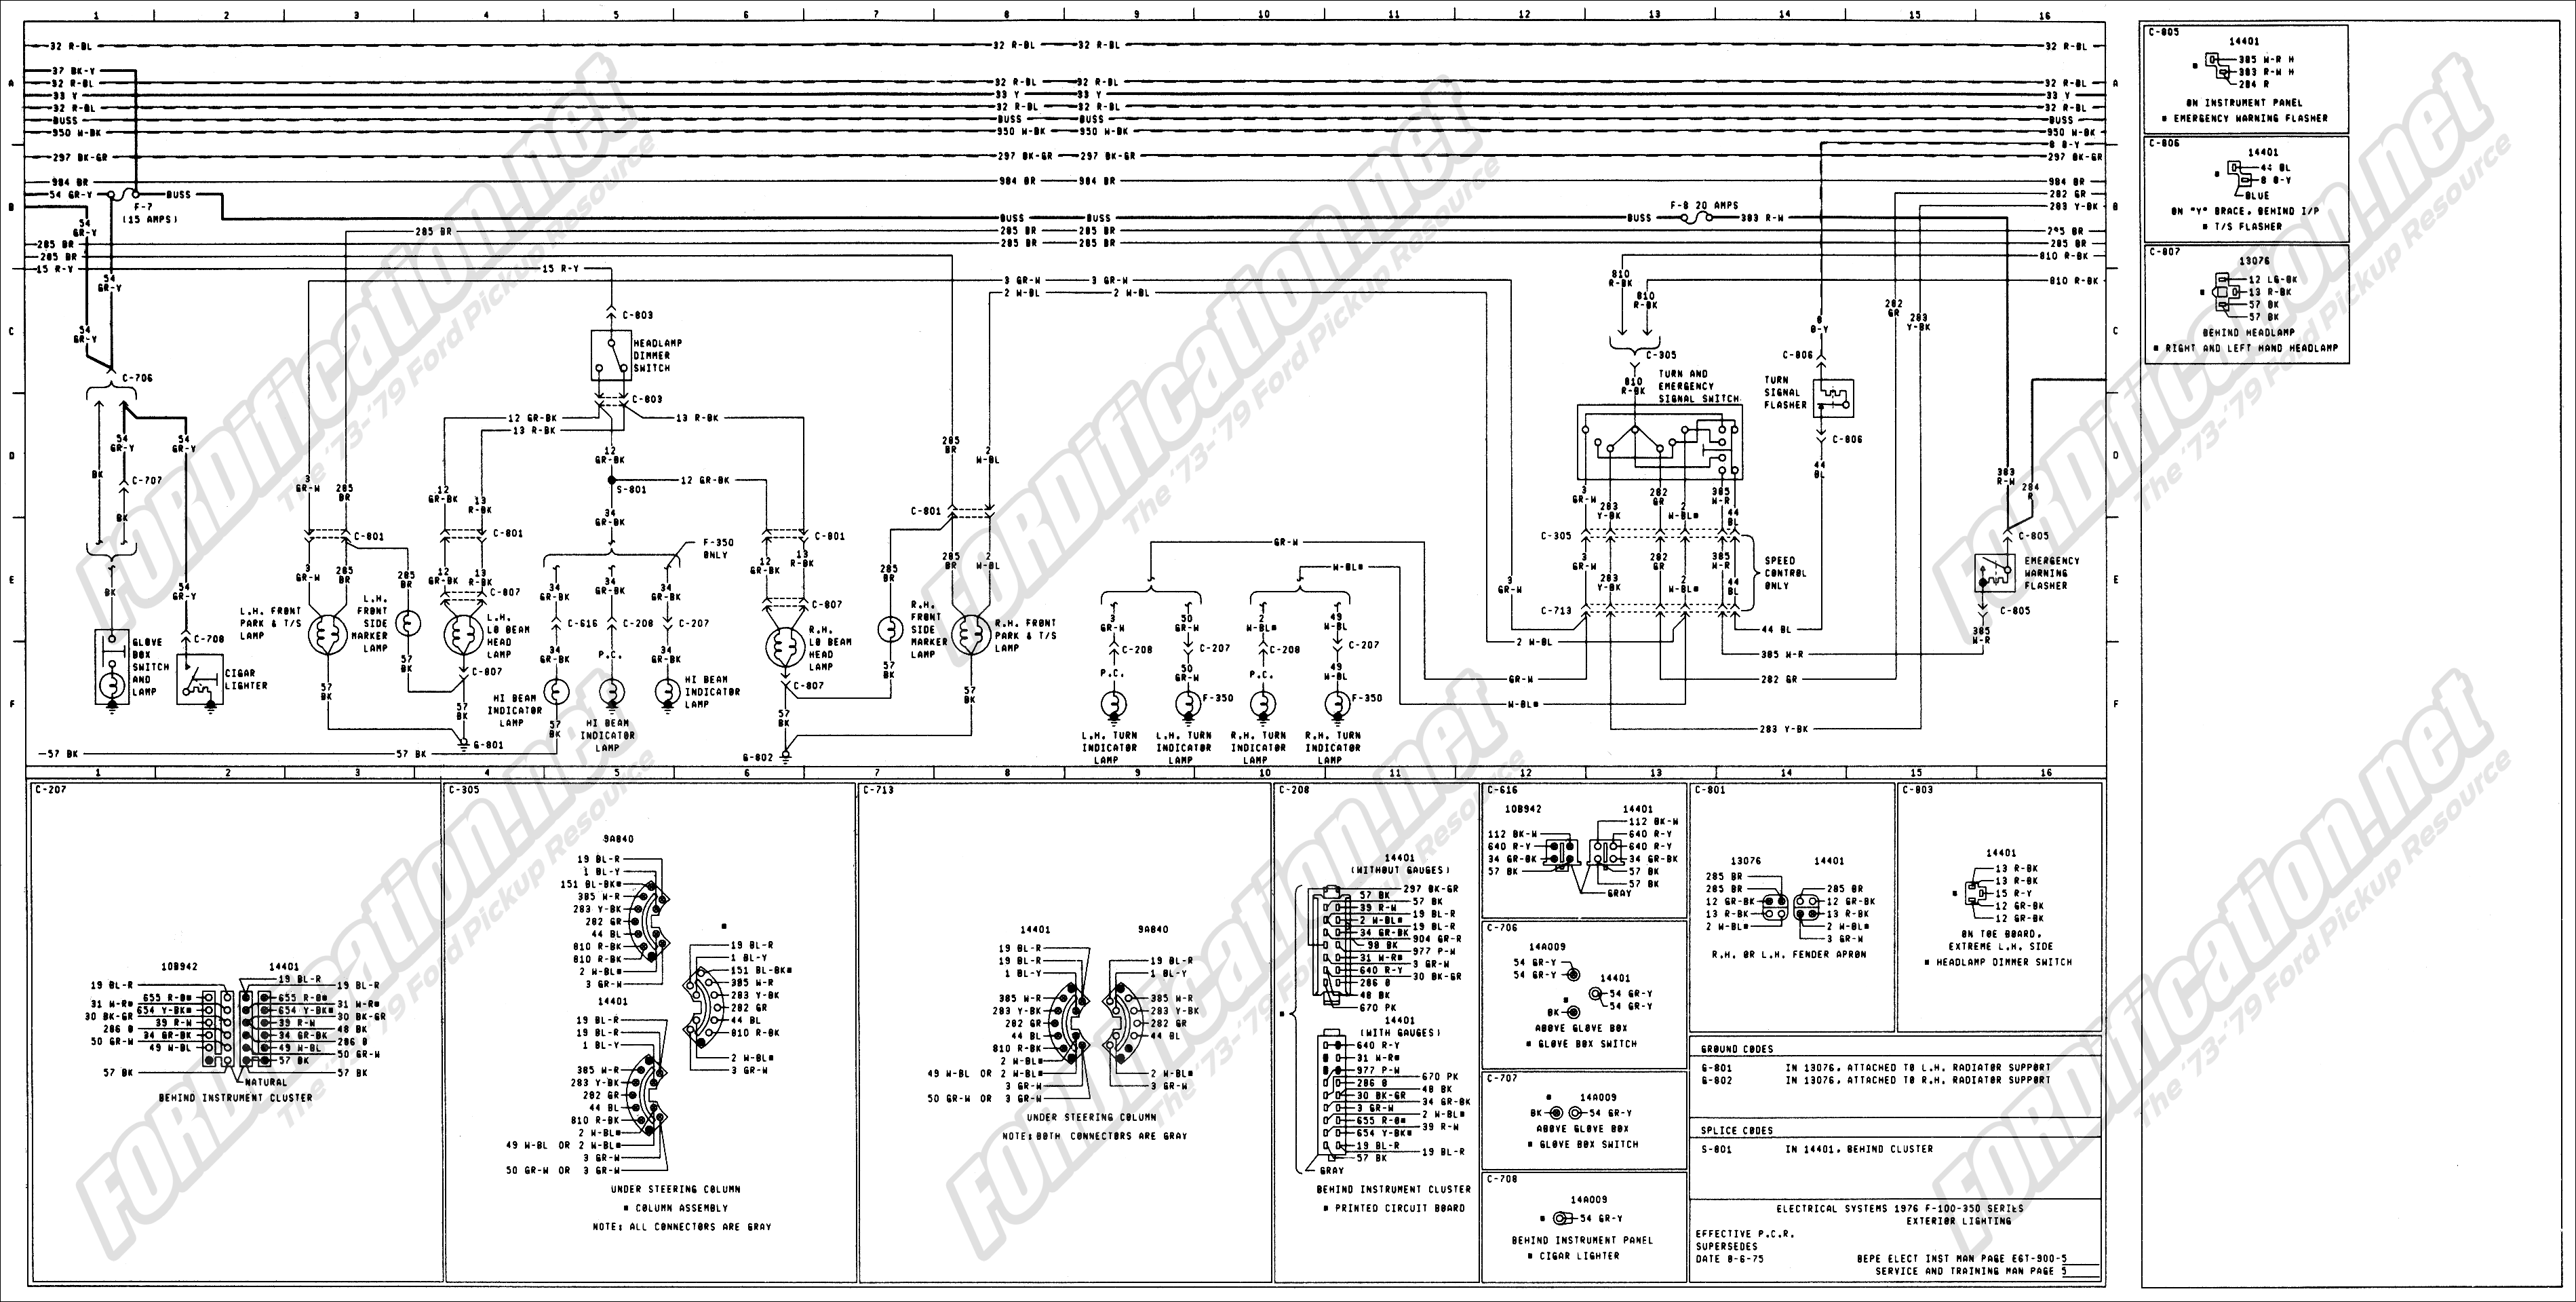 90 Ford F 250 Distributor Wiring Anything Diagrams 1965 Chevy Truck 1973 1979 Schematics Fordification Net Rh 460 Diagram